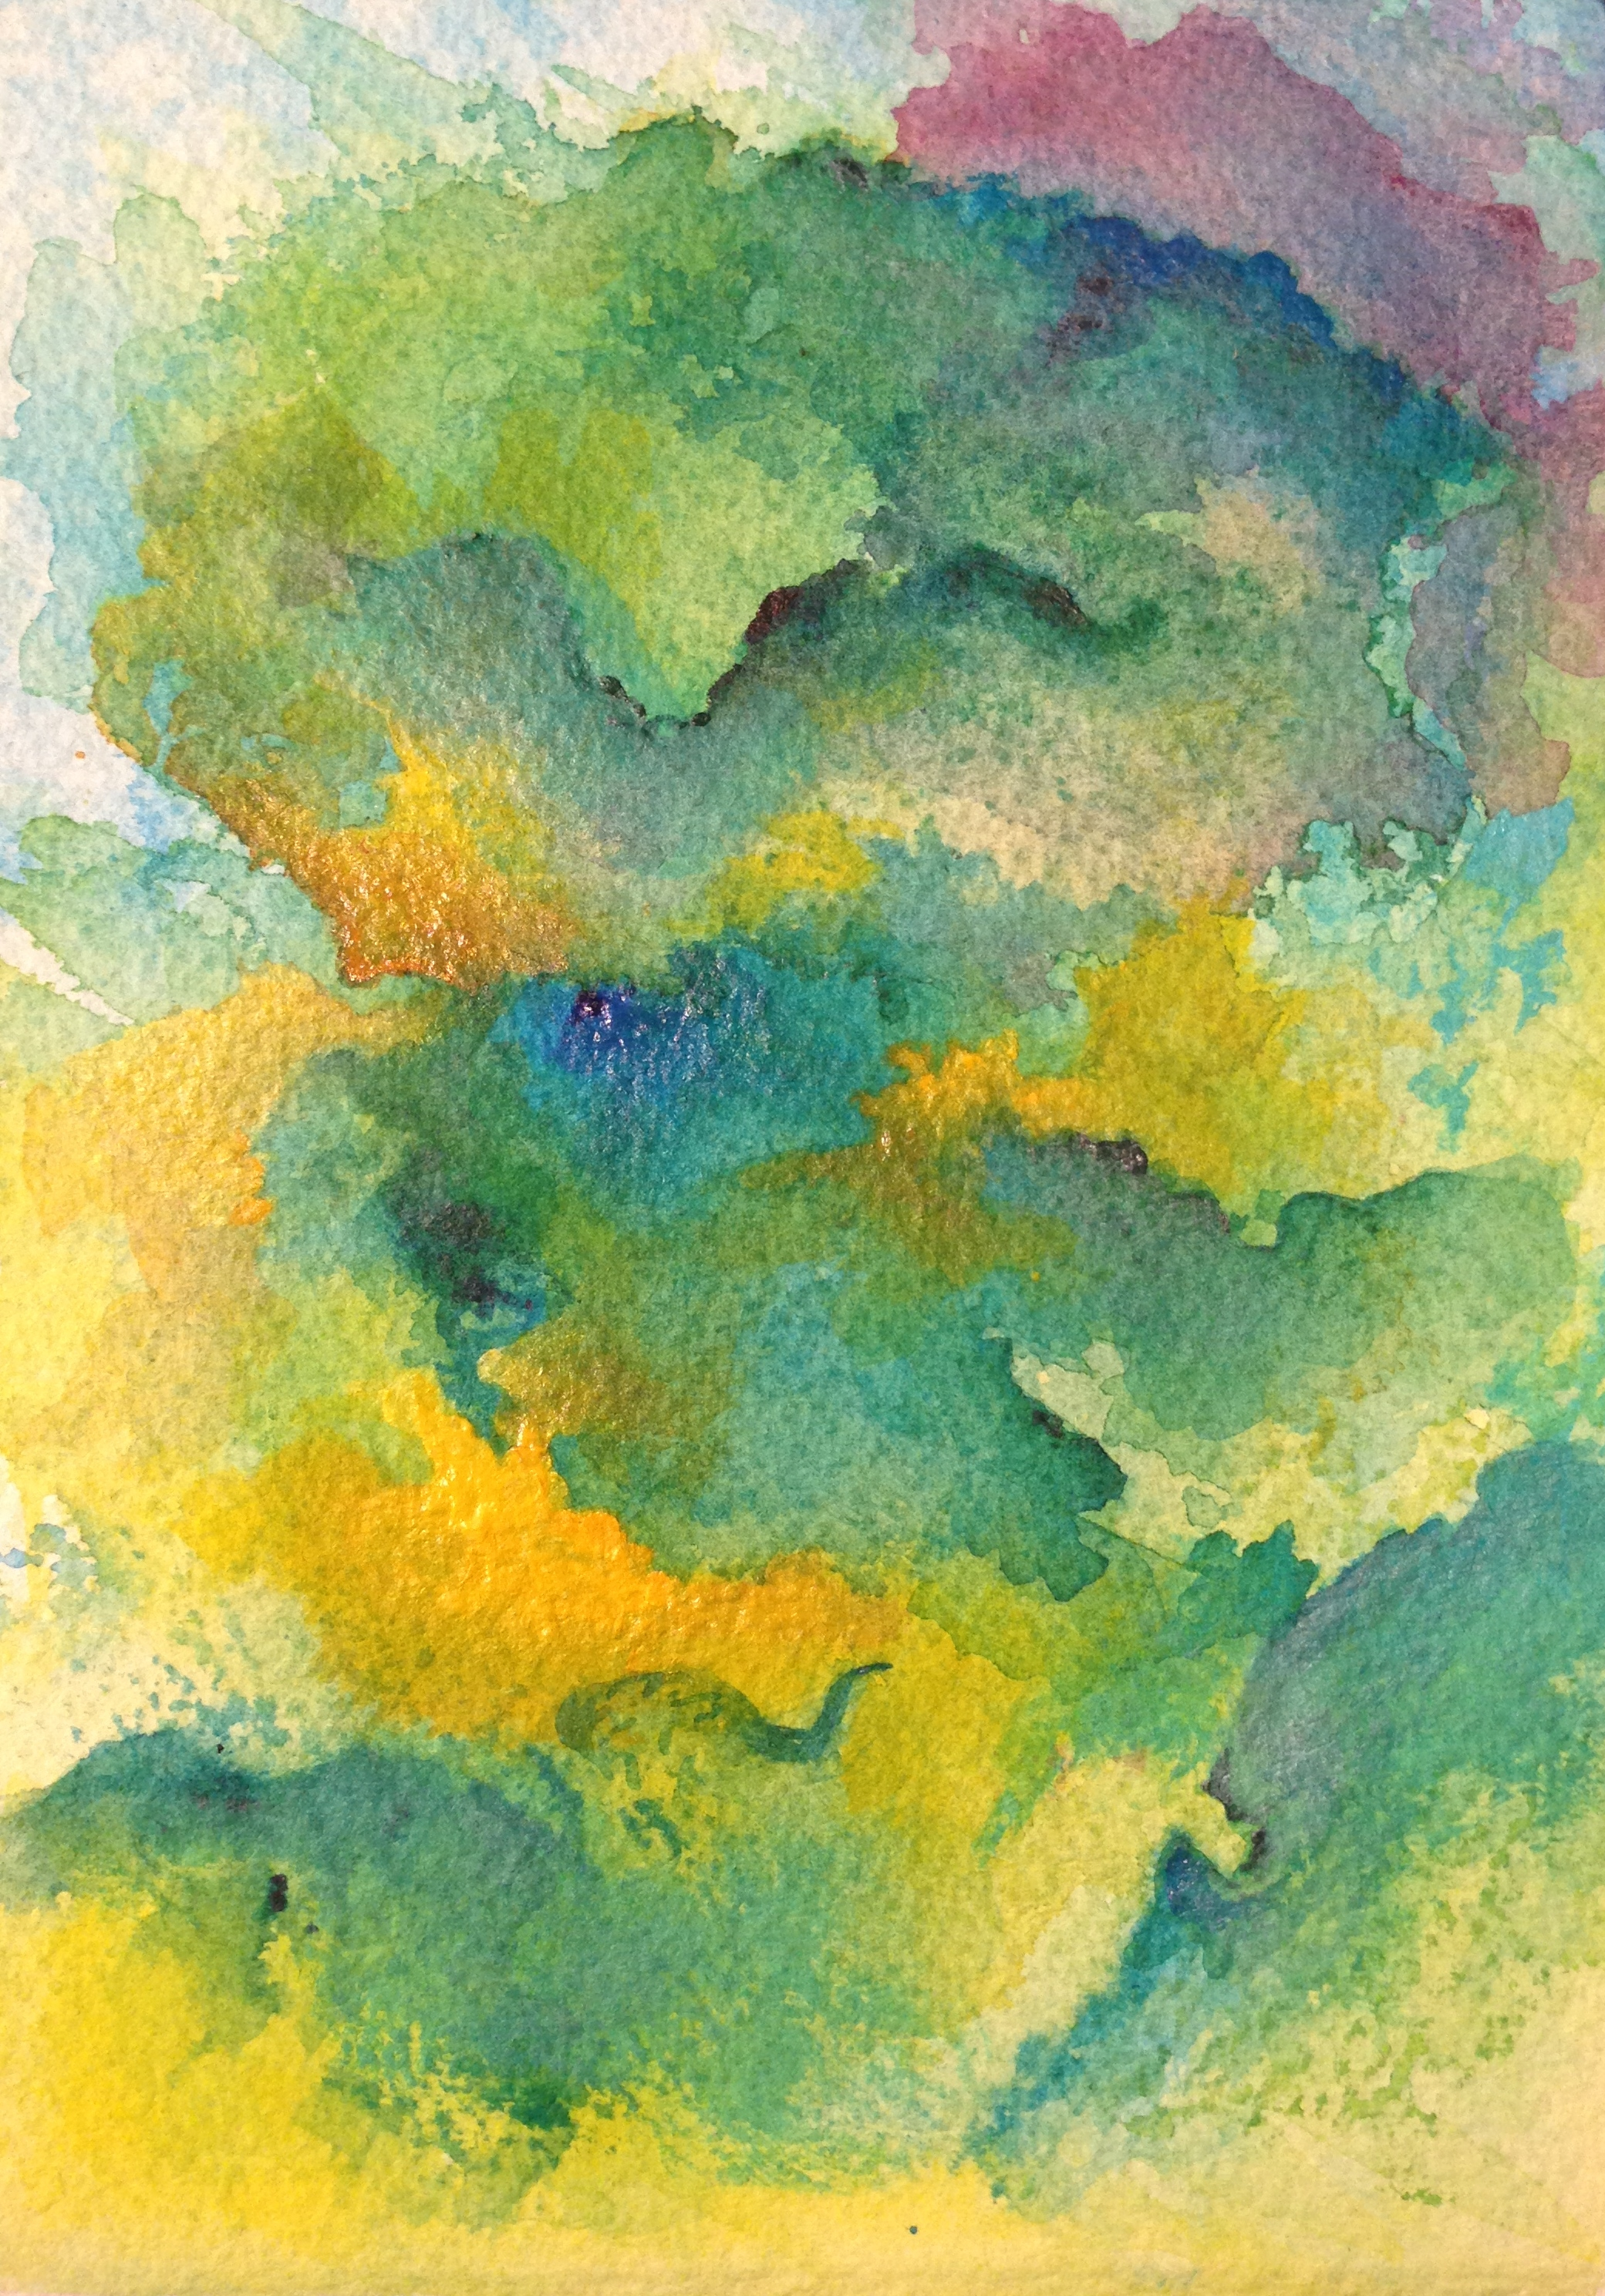 Acrylic over Watercolor on Watercolor Paper – Create art every day